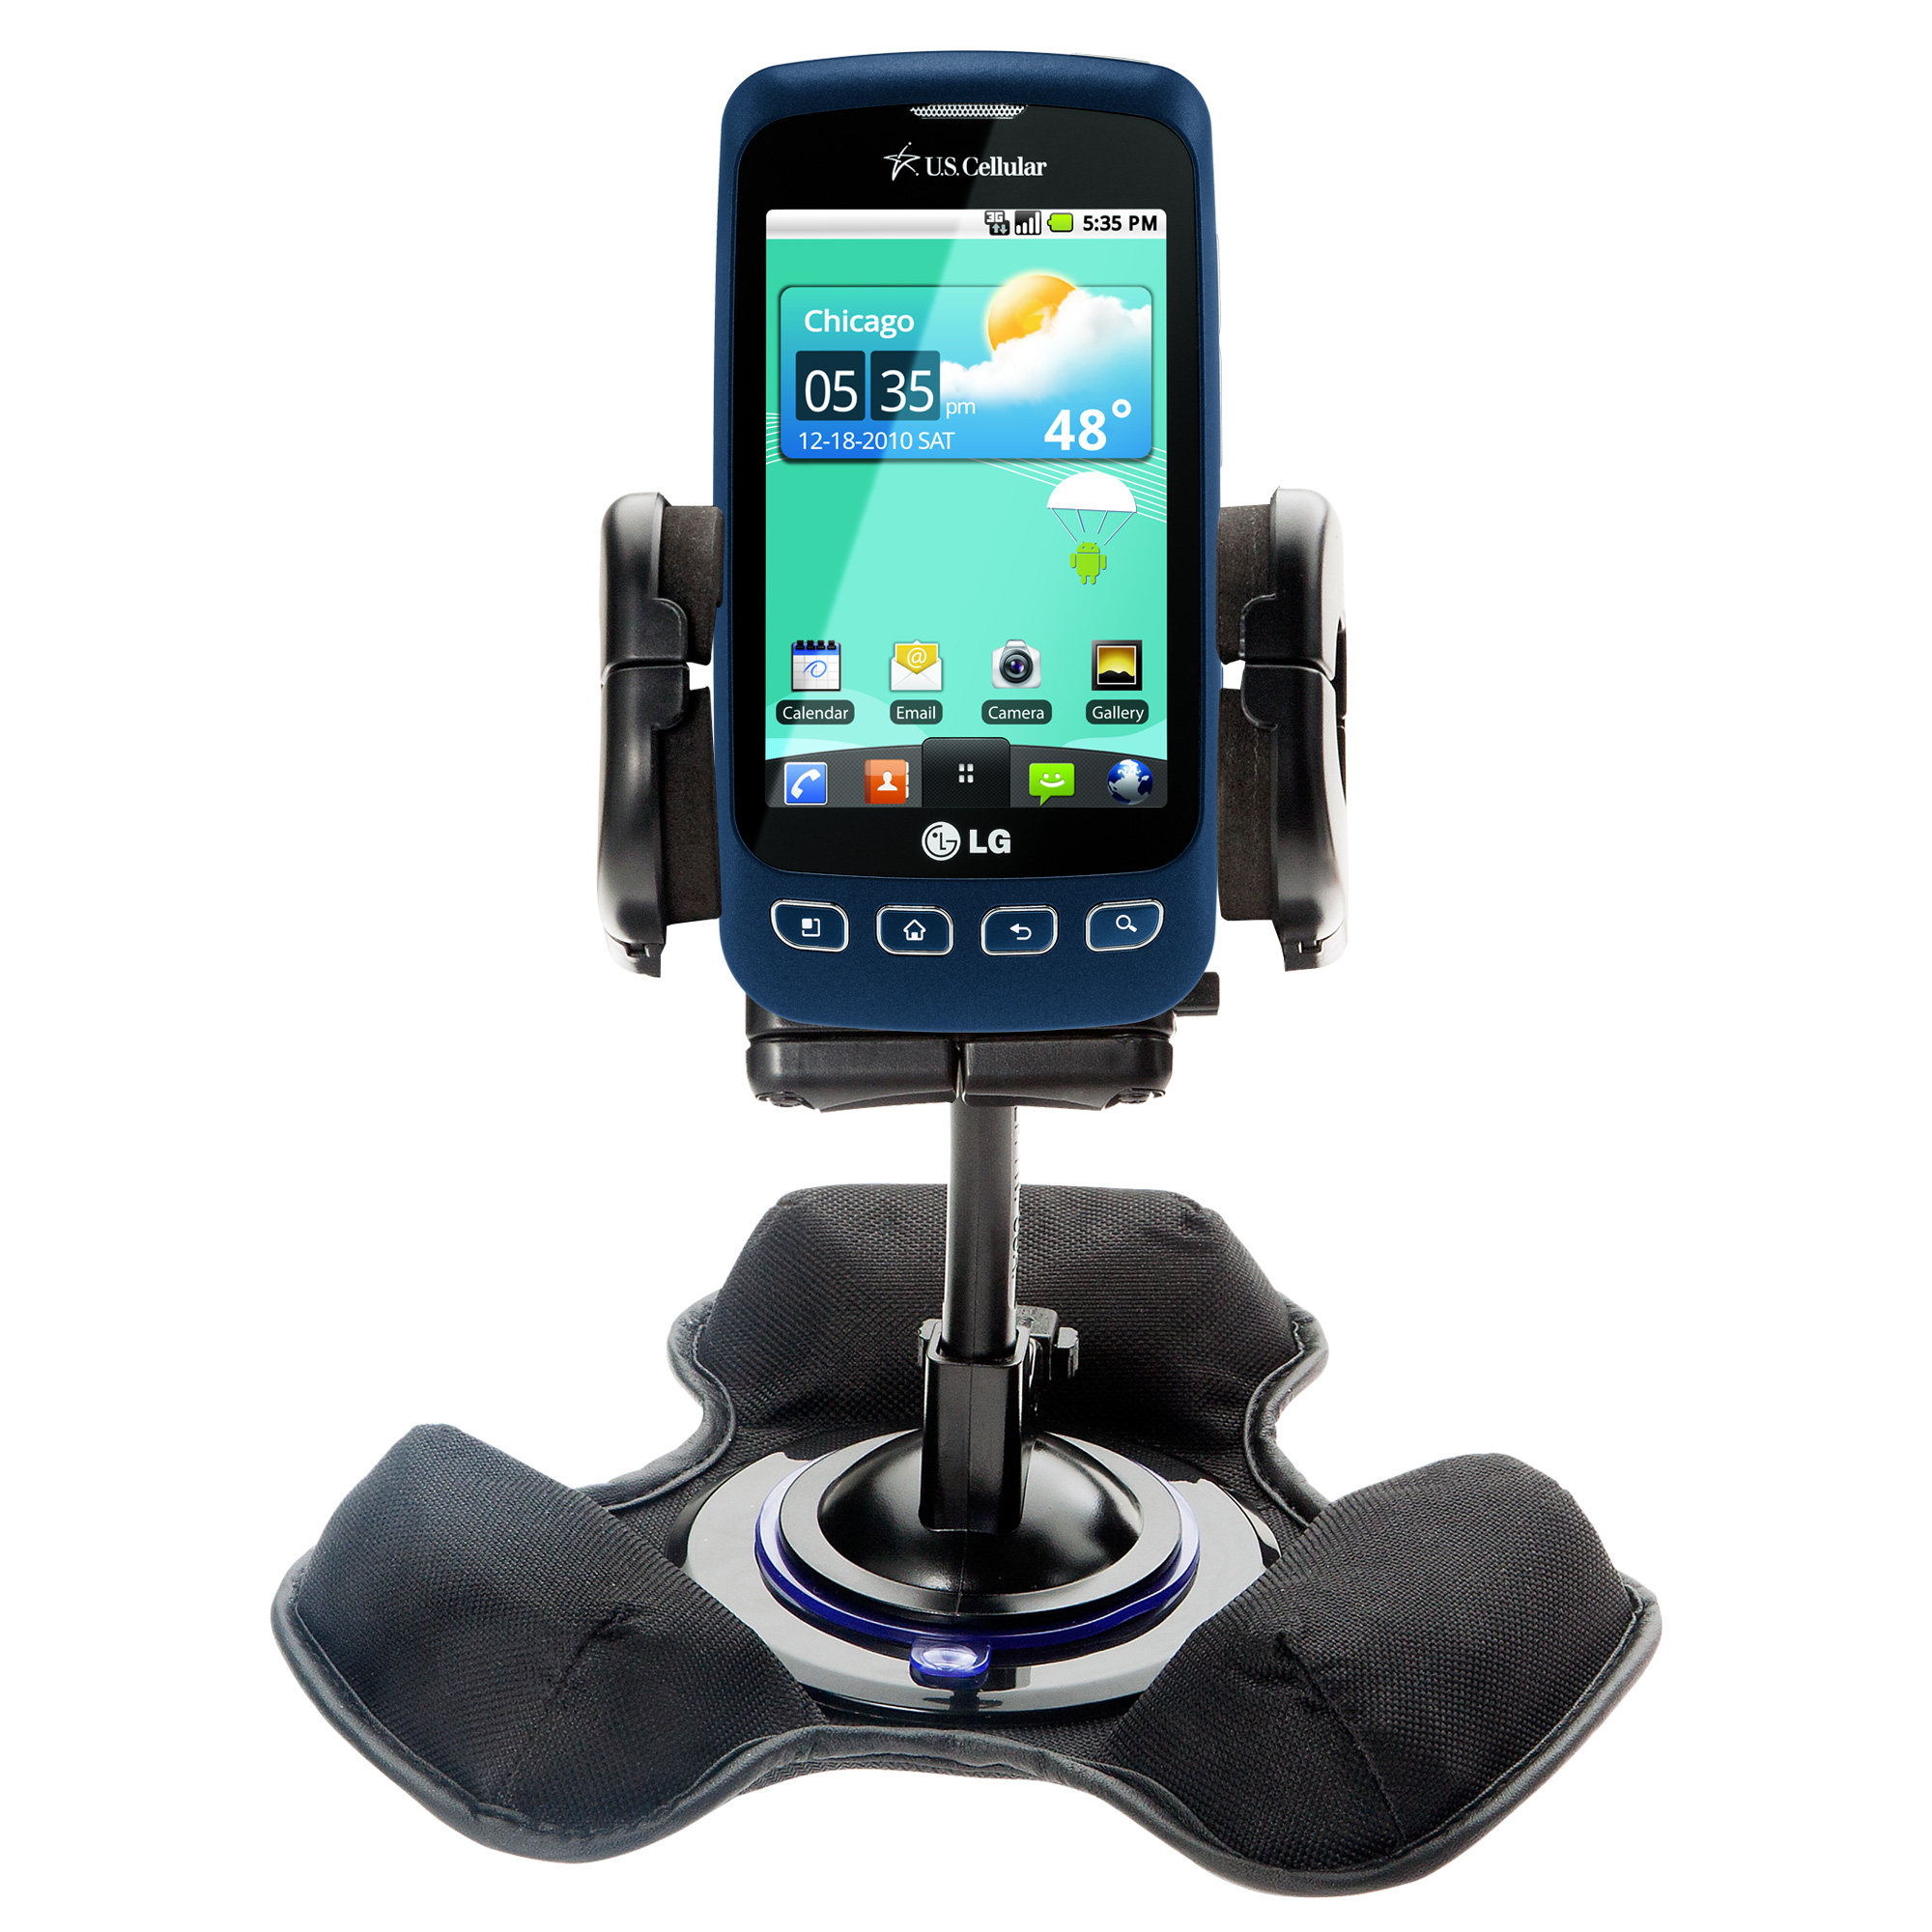 Dash and Windshield Holder compatible with the LG Optimus S